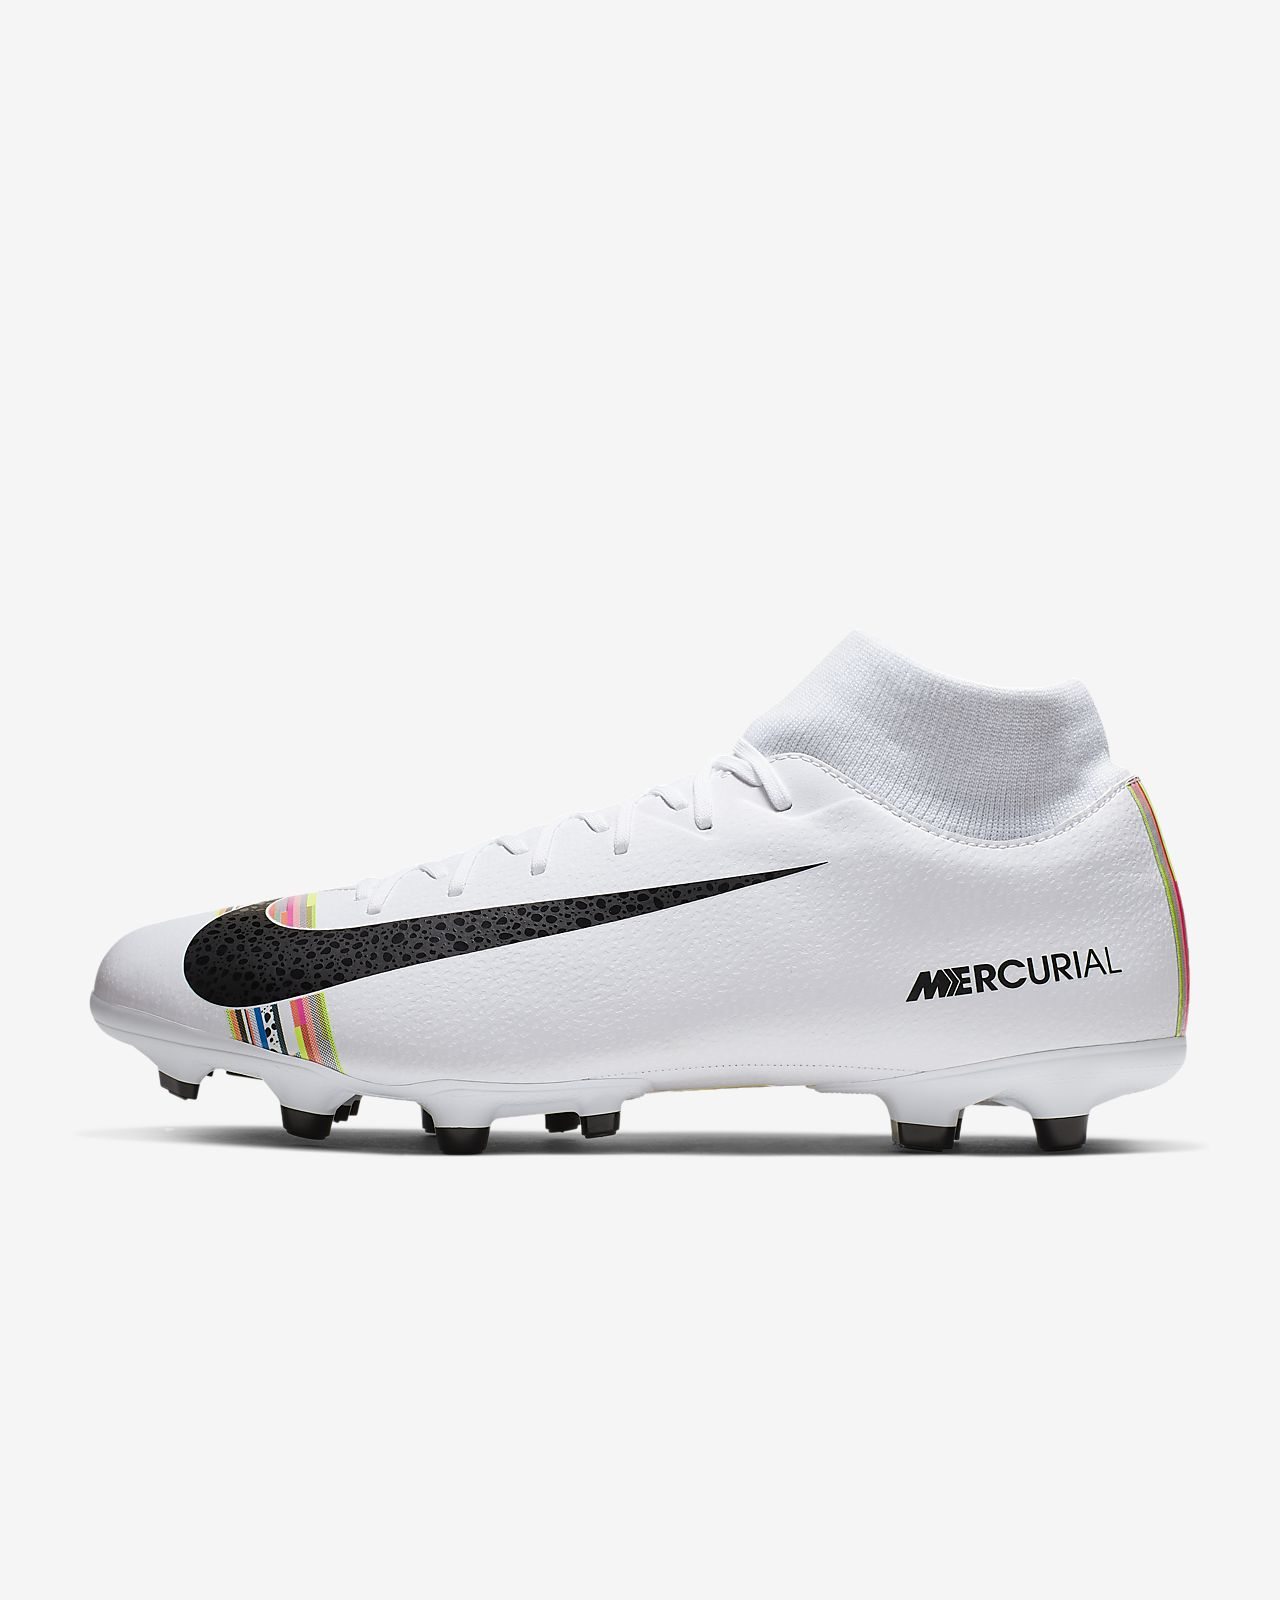 6085e7b8a ... Nike Mercurial Superfly 6 Academy LVL UP MG Multi-Ground Soccer Cleat